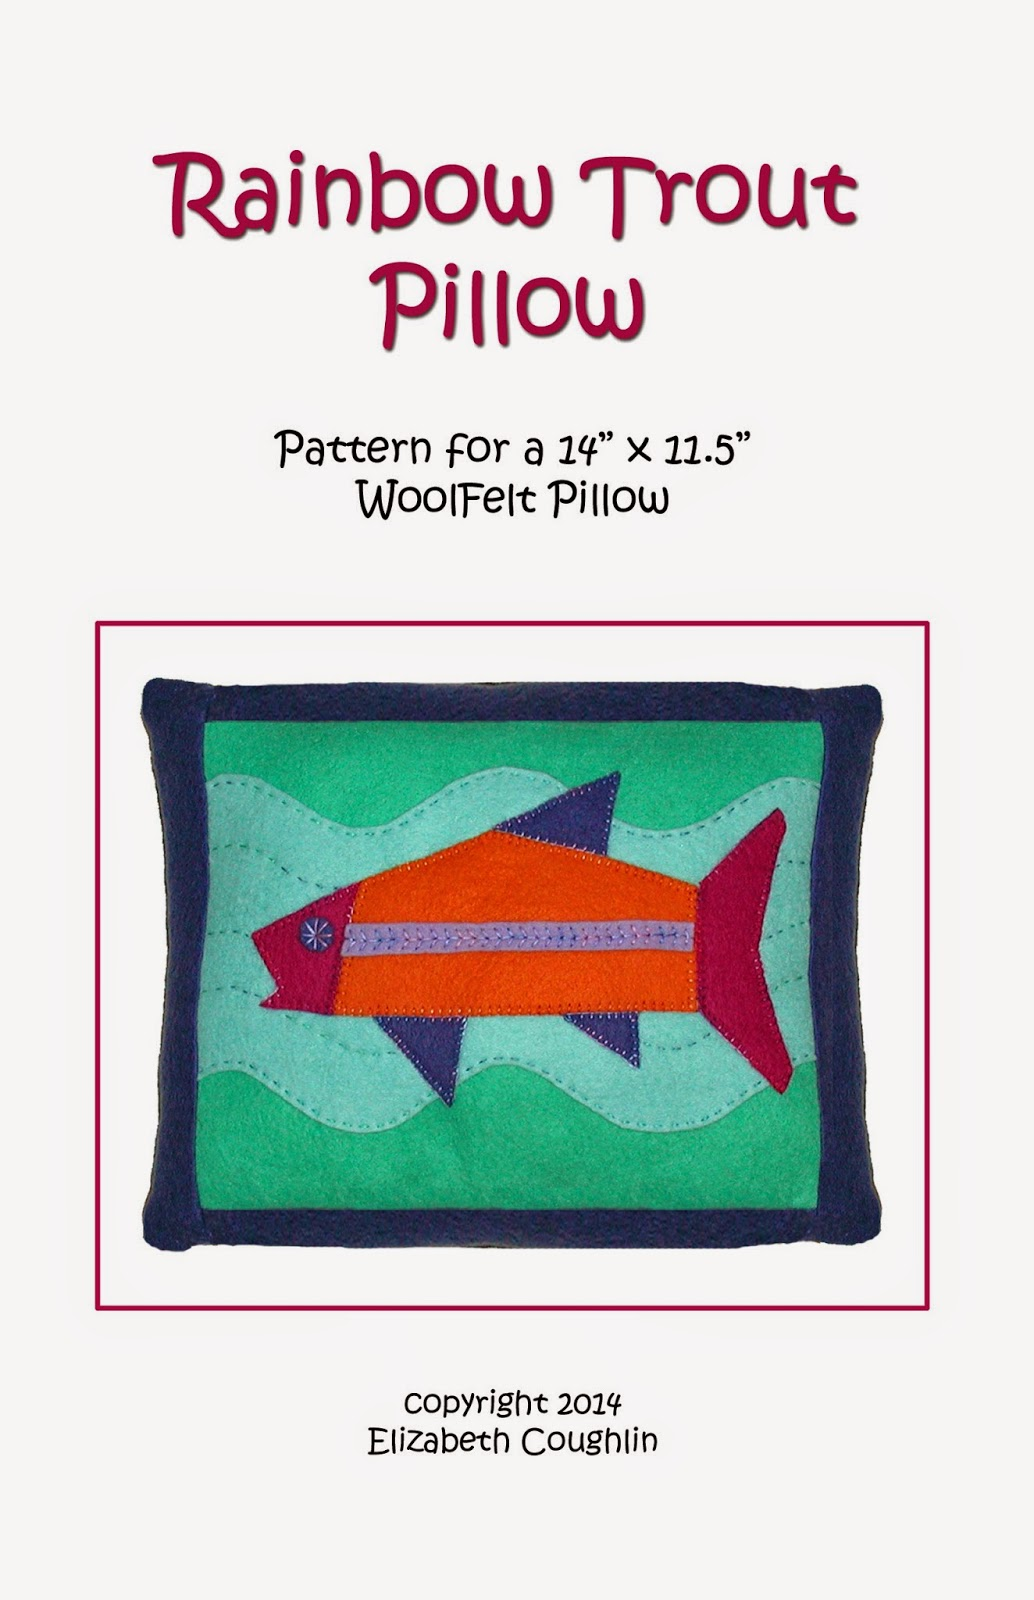 http://busybeeweb.com/ecoughlindesigns/rainbowtroutpillow.pdf